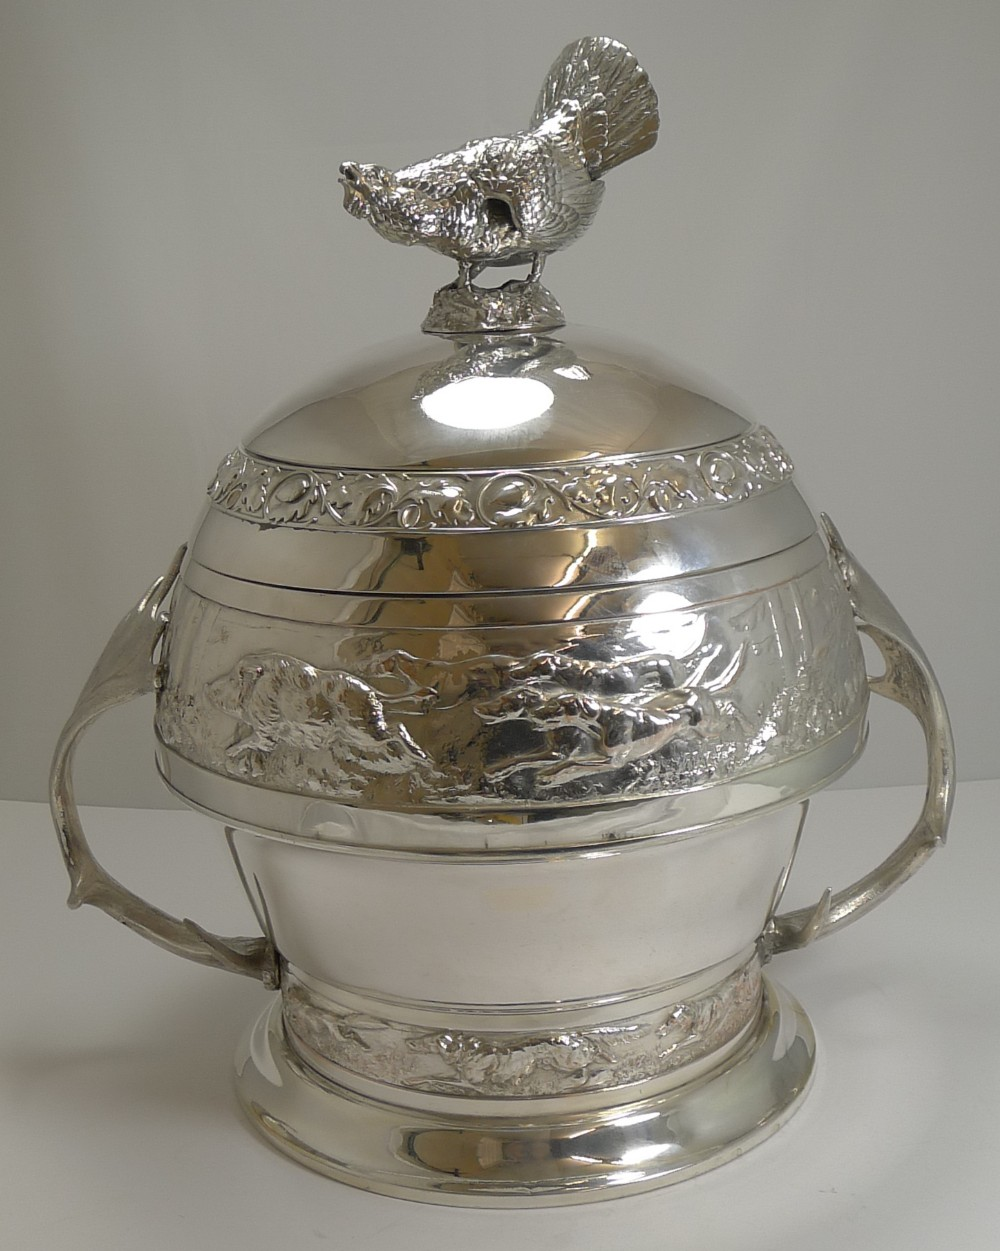 grand silver plated hunting tureen by wmf c1920 signed